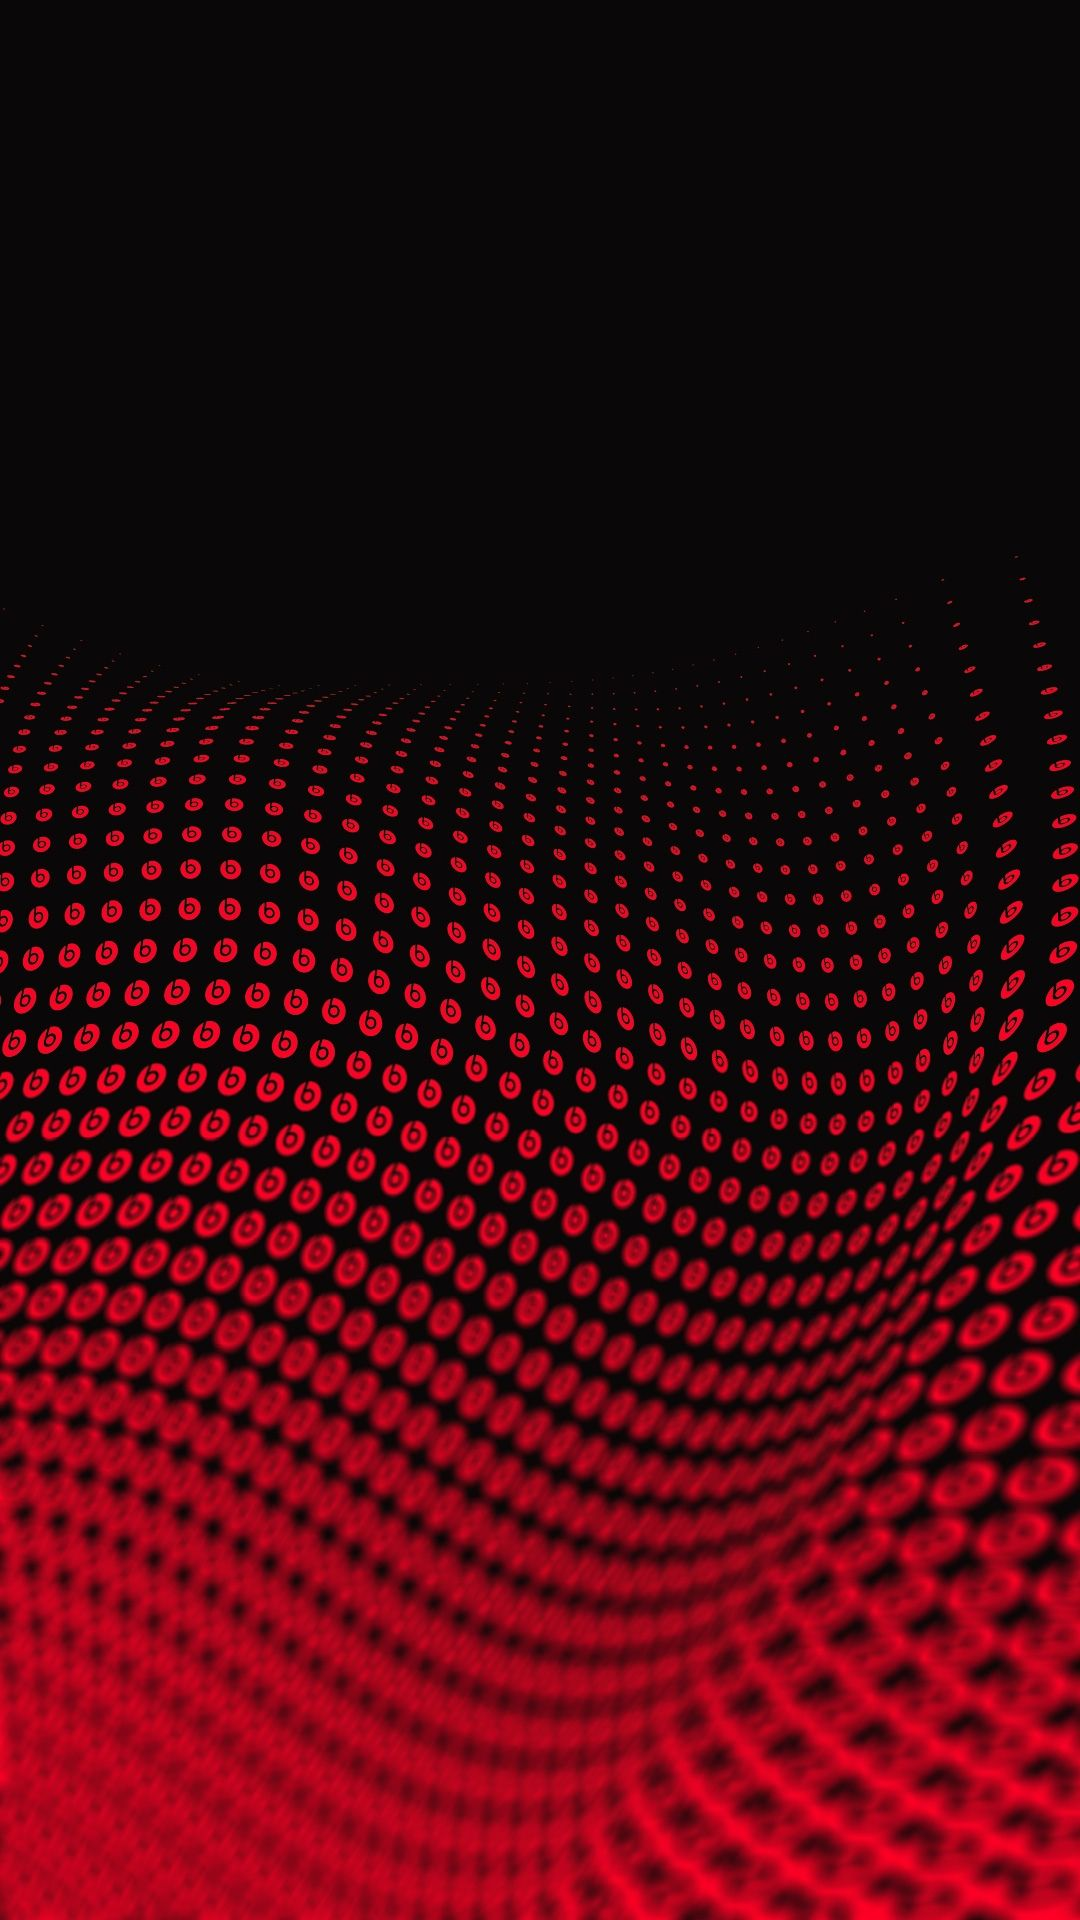 The 1 nexus5 Color Wallpaper I just shared! Htc wallpaper